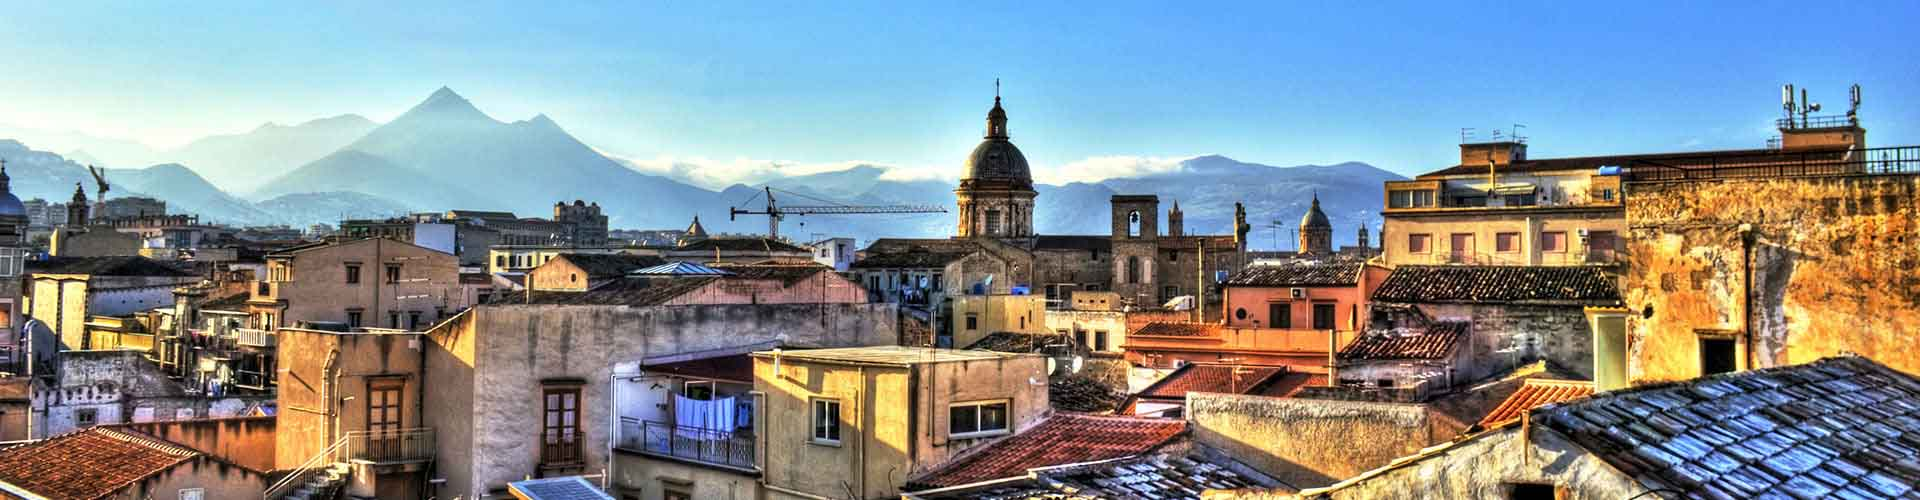 Palermo – Hostels in the Centro Storico district. Maps for Palermo, Photos and Reviews for each hostel in Palermo.